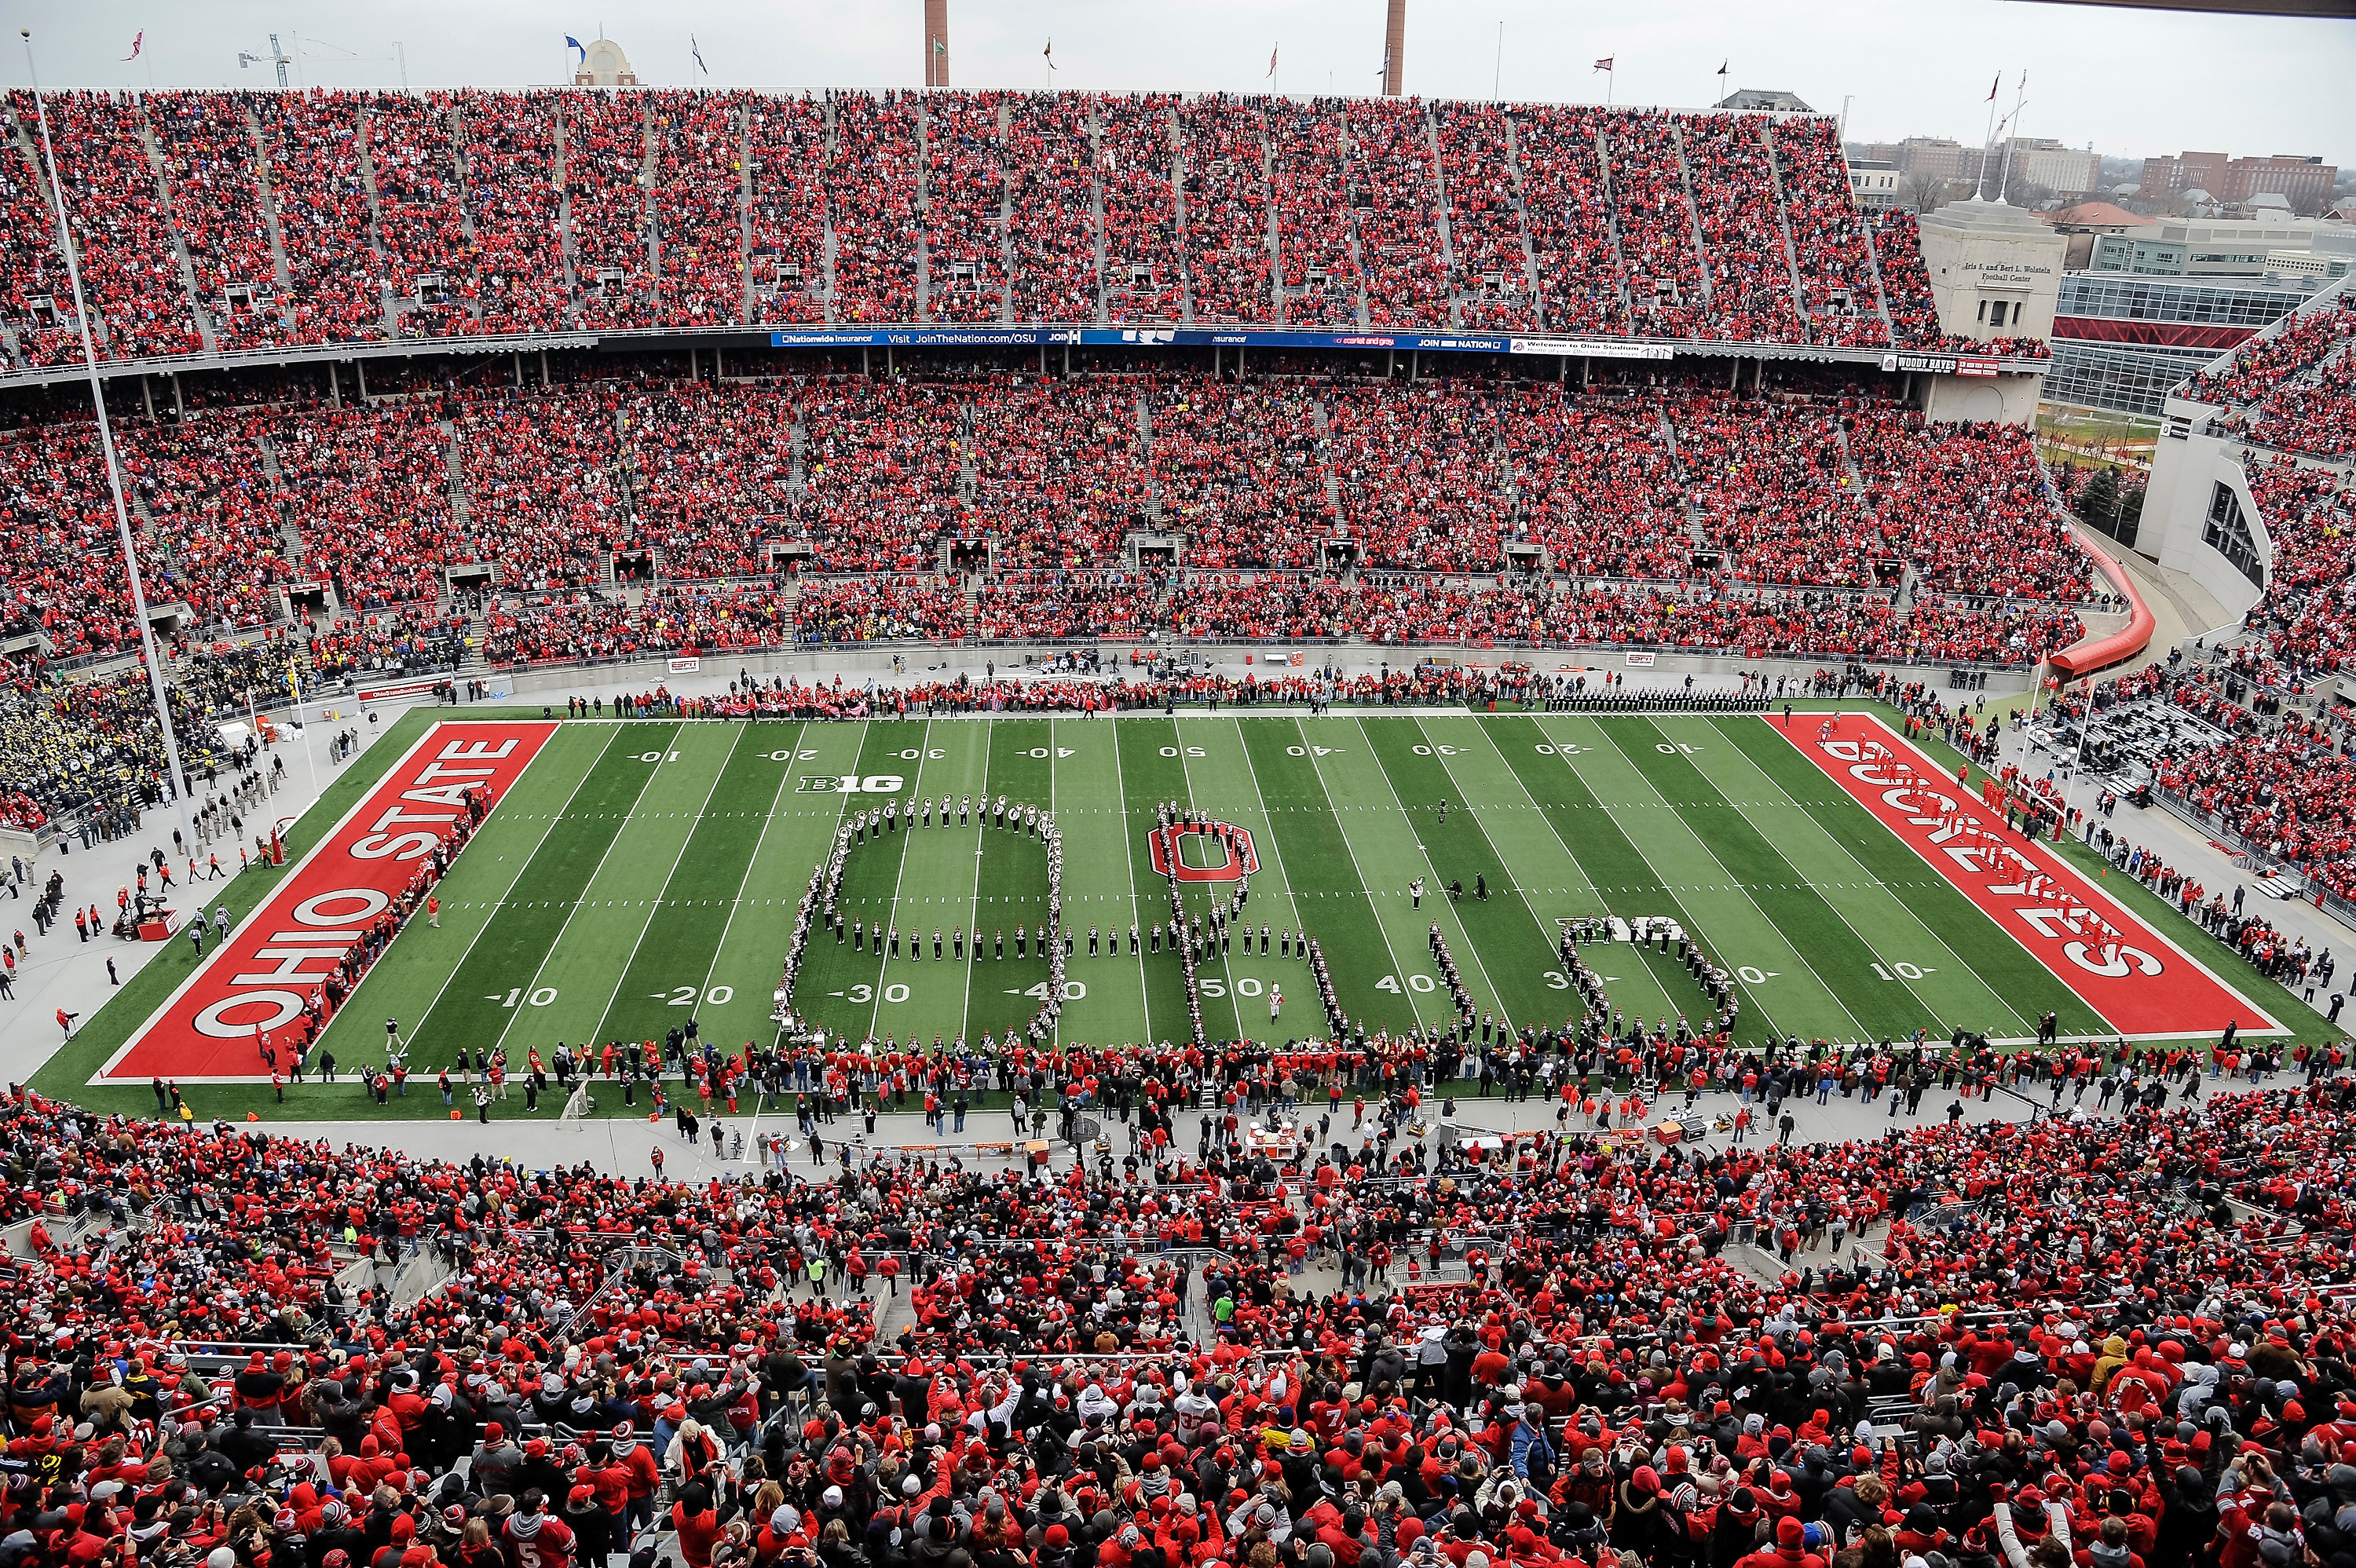 1920x1080 Fantastic Wallpaper Football Ohio State - 315536_osu-wallpapers -100-ohio- state-